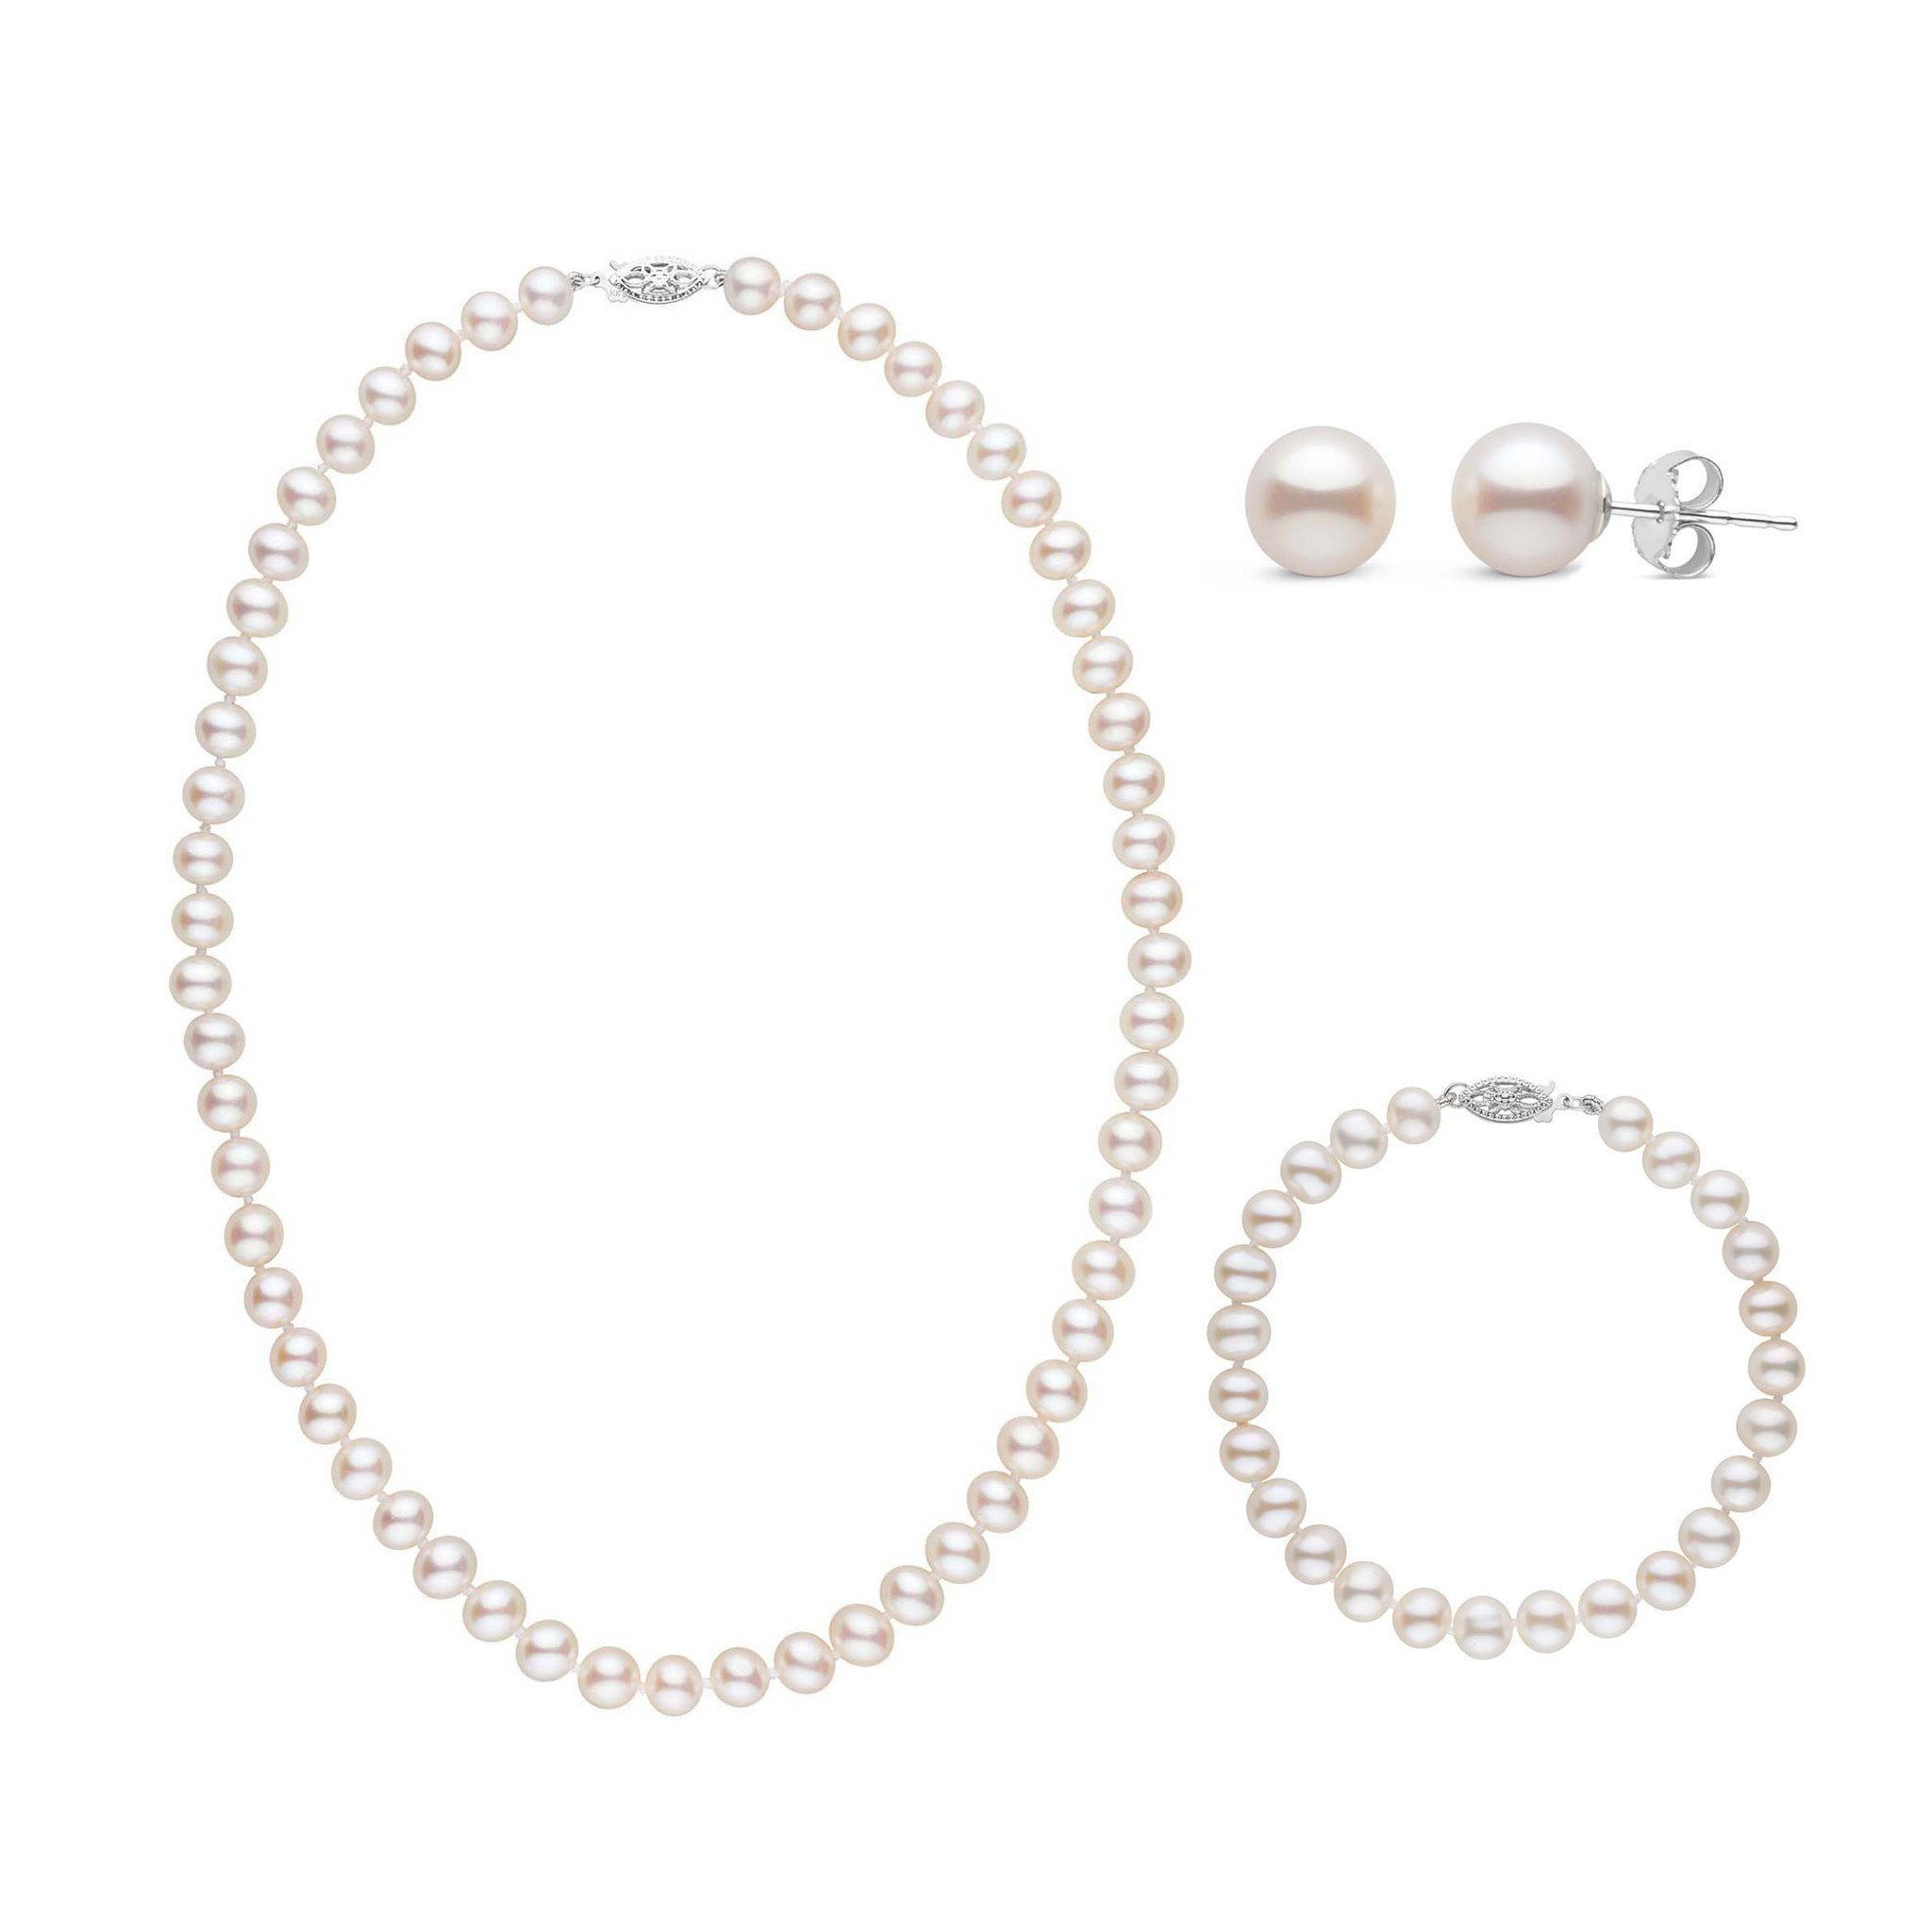 18 Inch 3 Piece Set of 6.5-7.0 mm AA+ White Freshwater Pearls